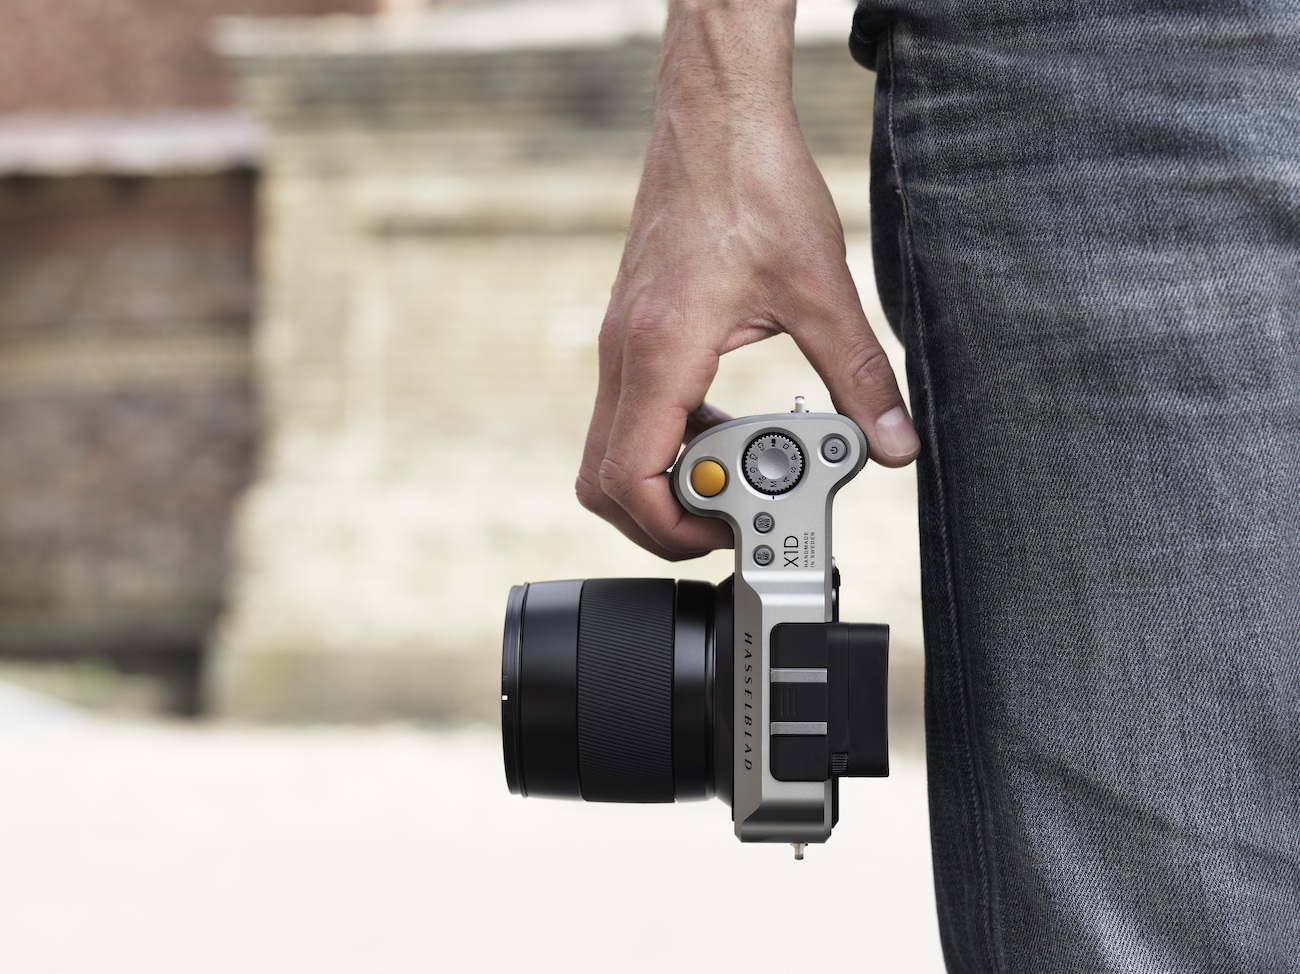 Hasselblad X1D-50C Compact DSLR Camera captures incredible images